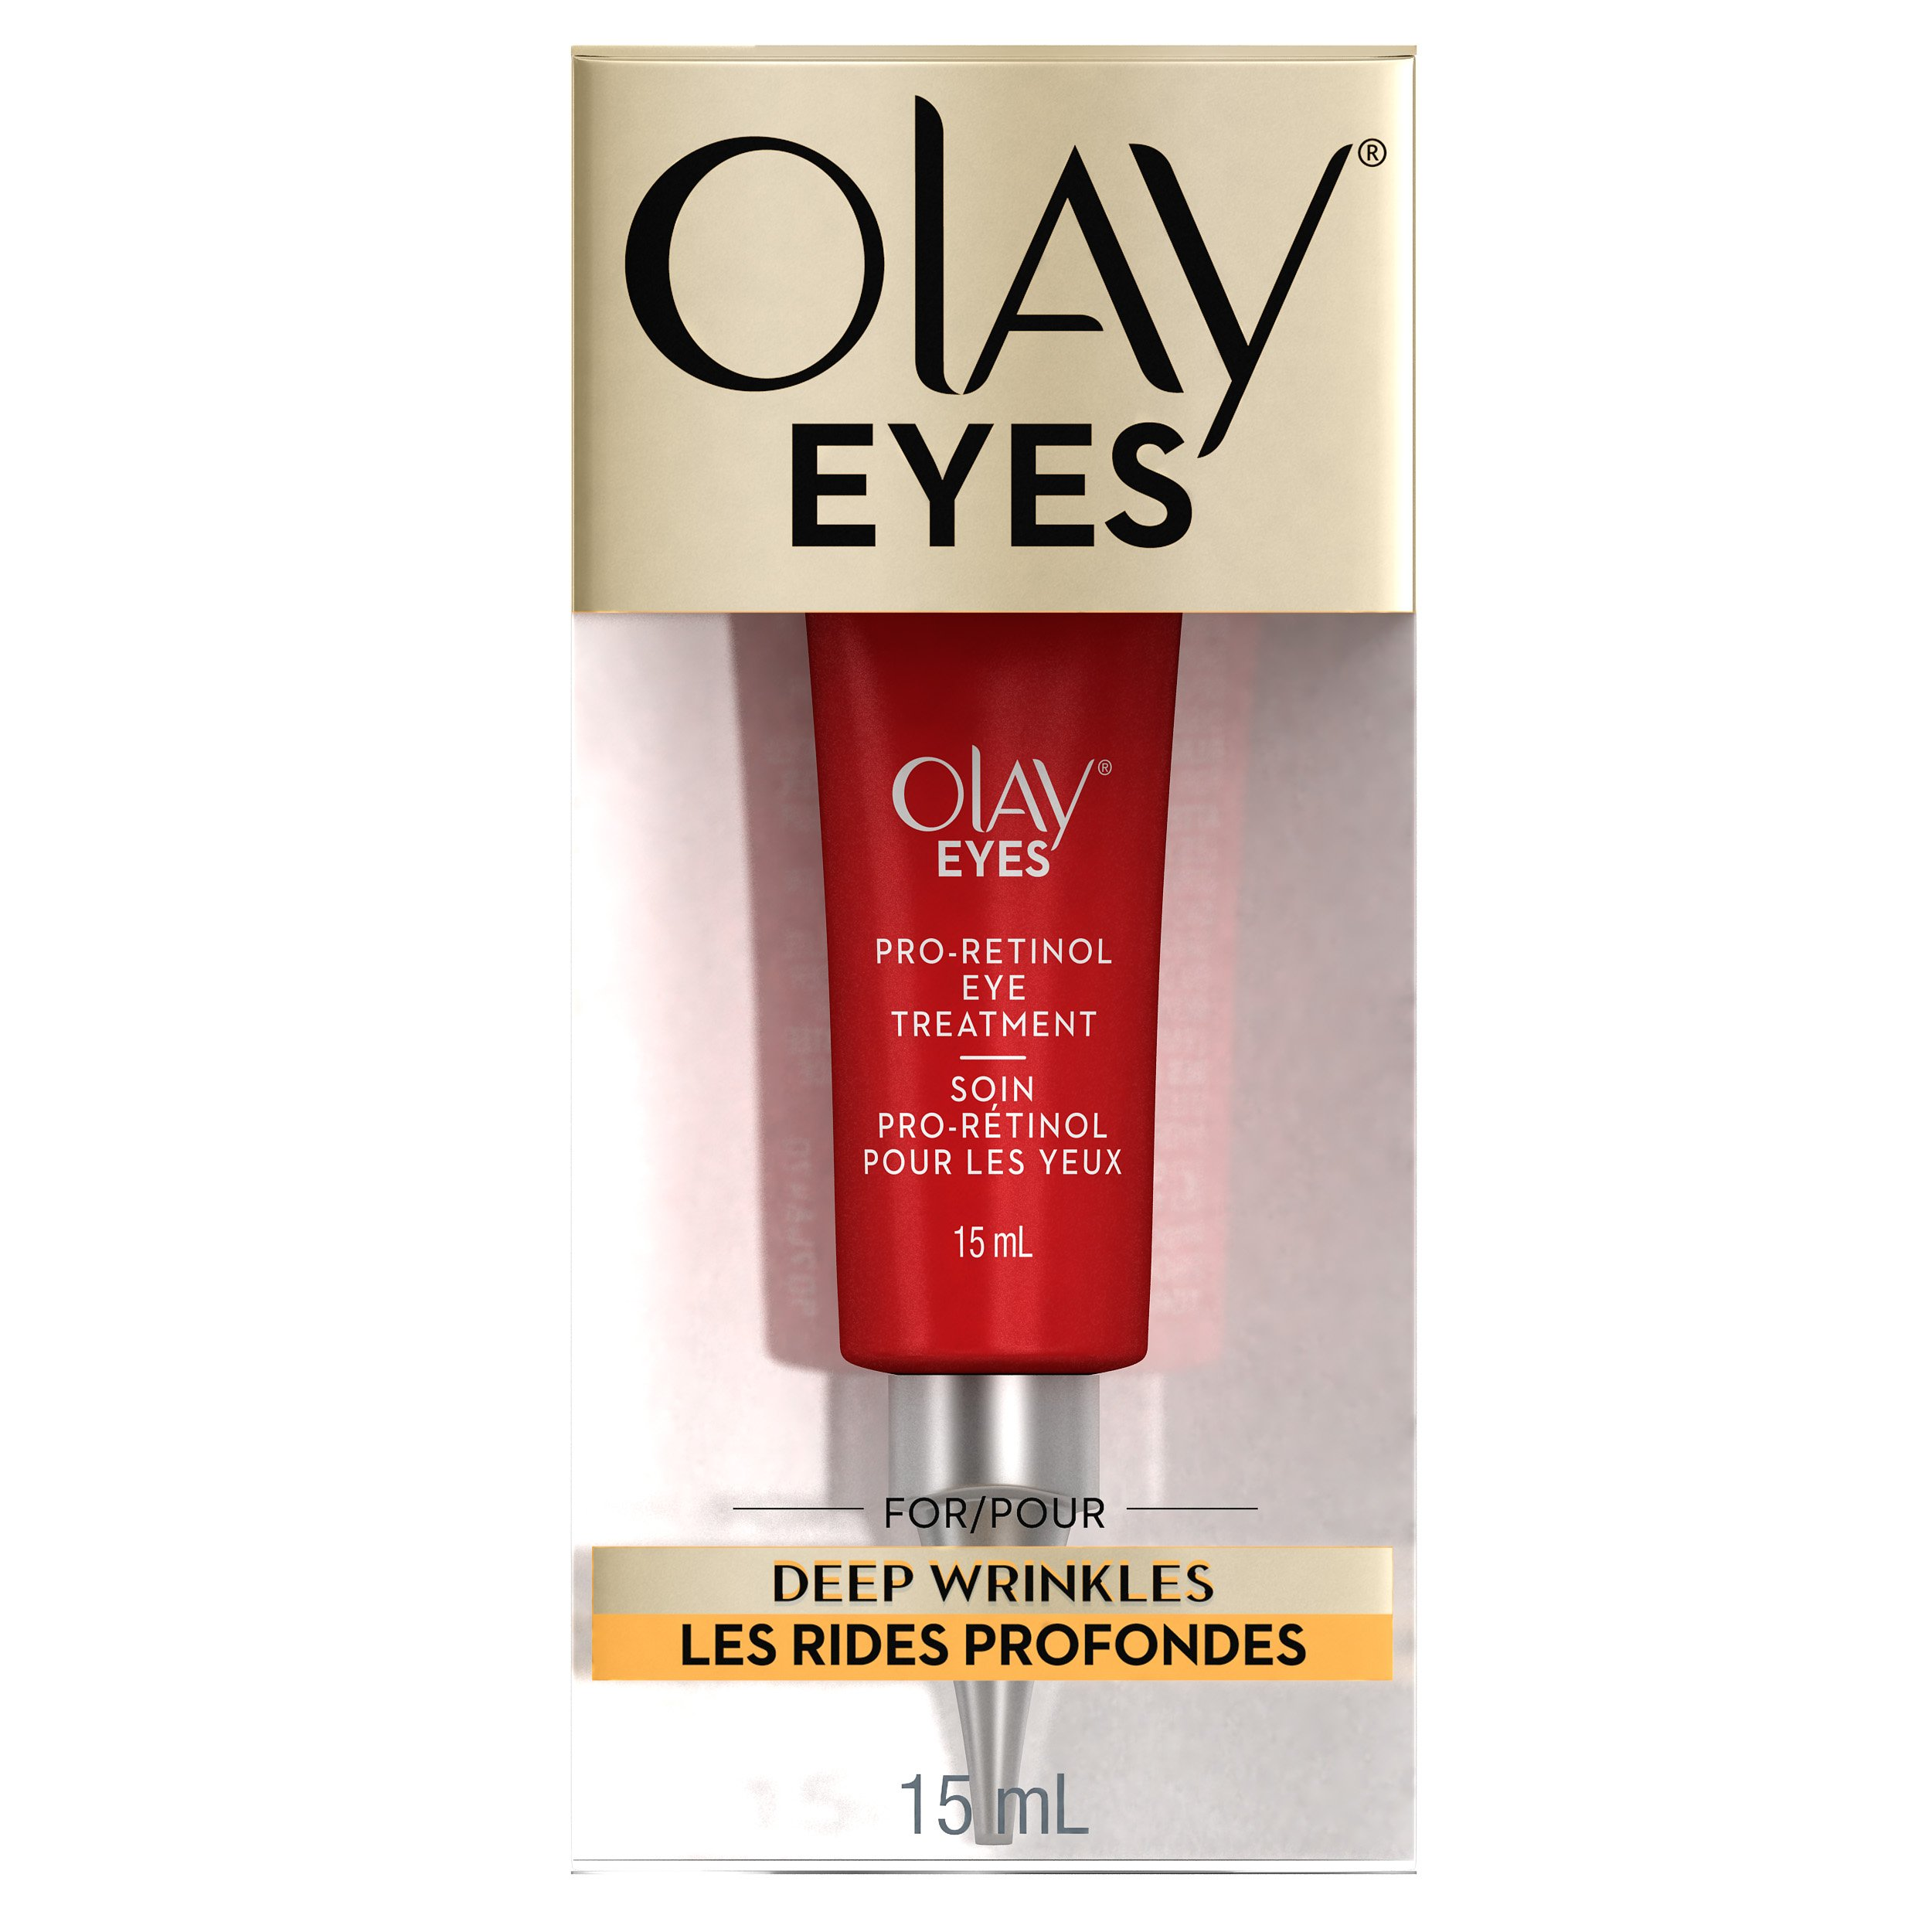 Olay Eyes Pro Retinol Eye Cream Treatment For Wrinkles Shop Eye Cream At H E B